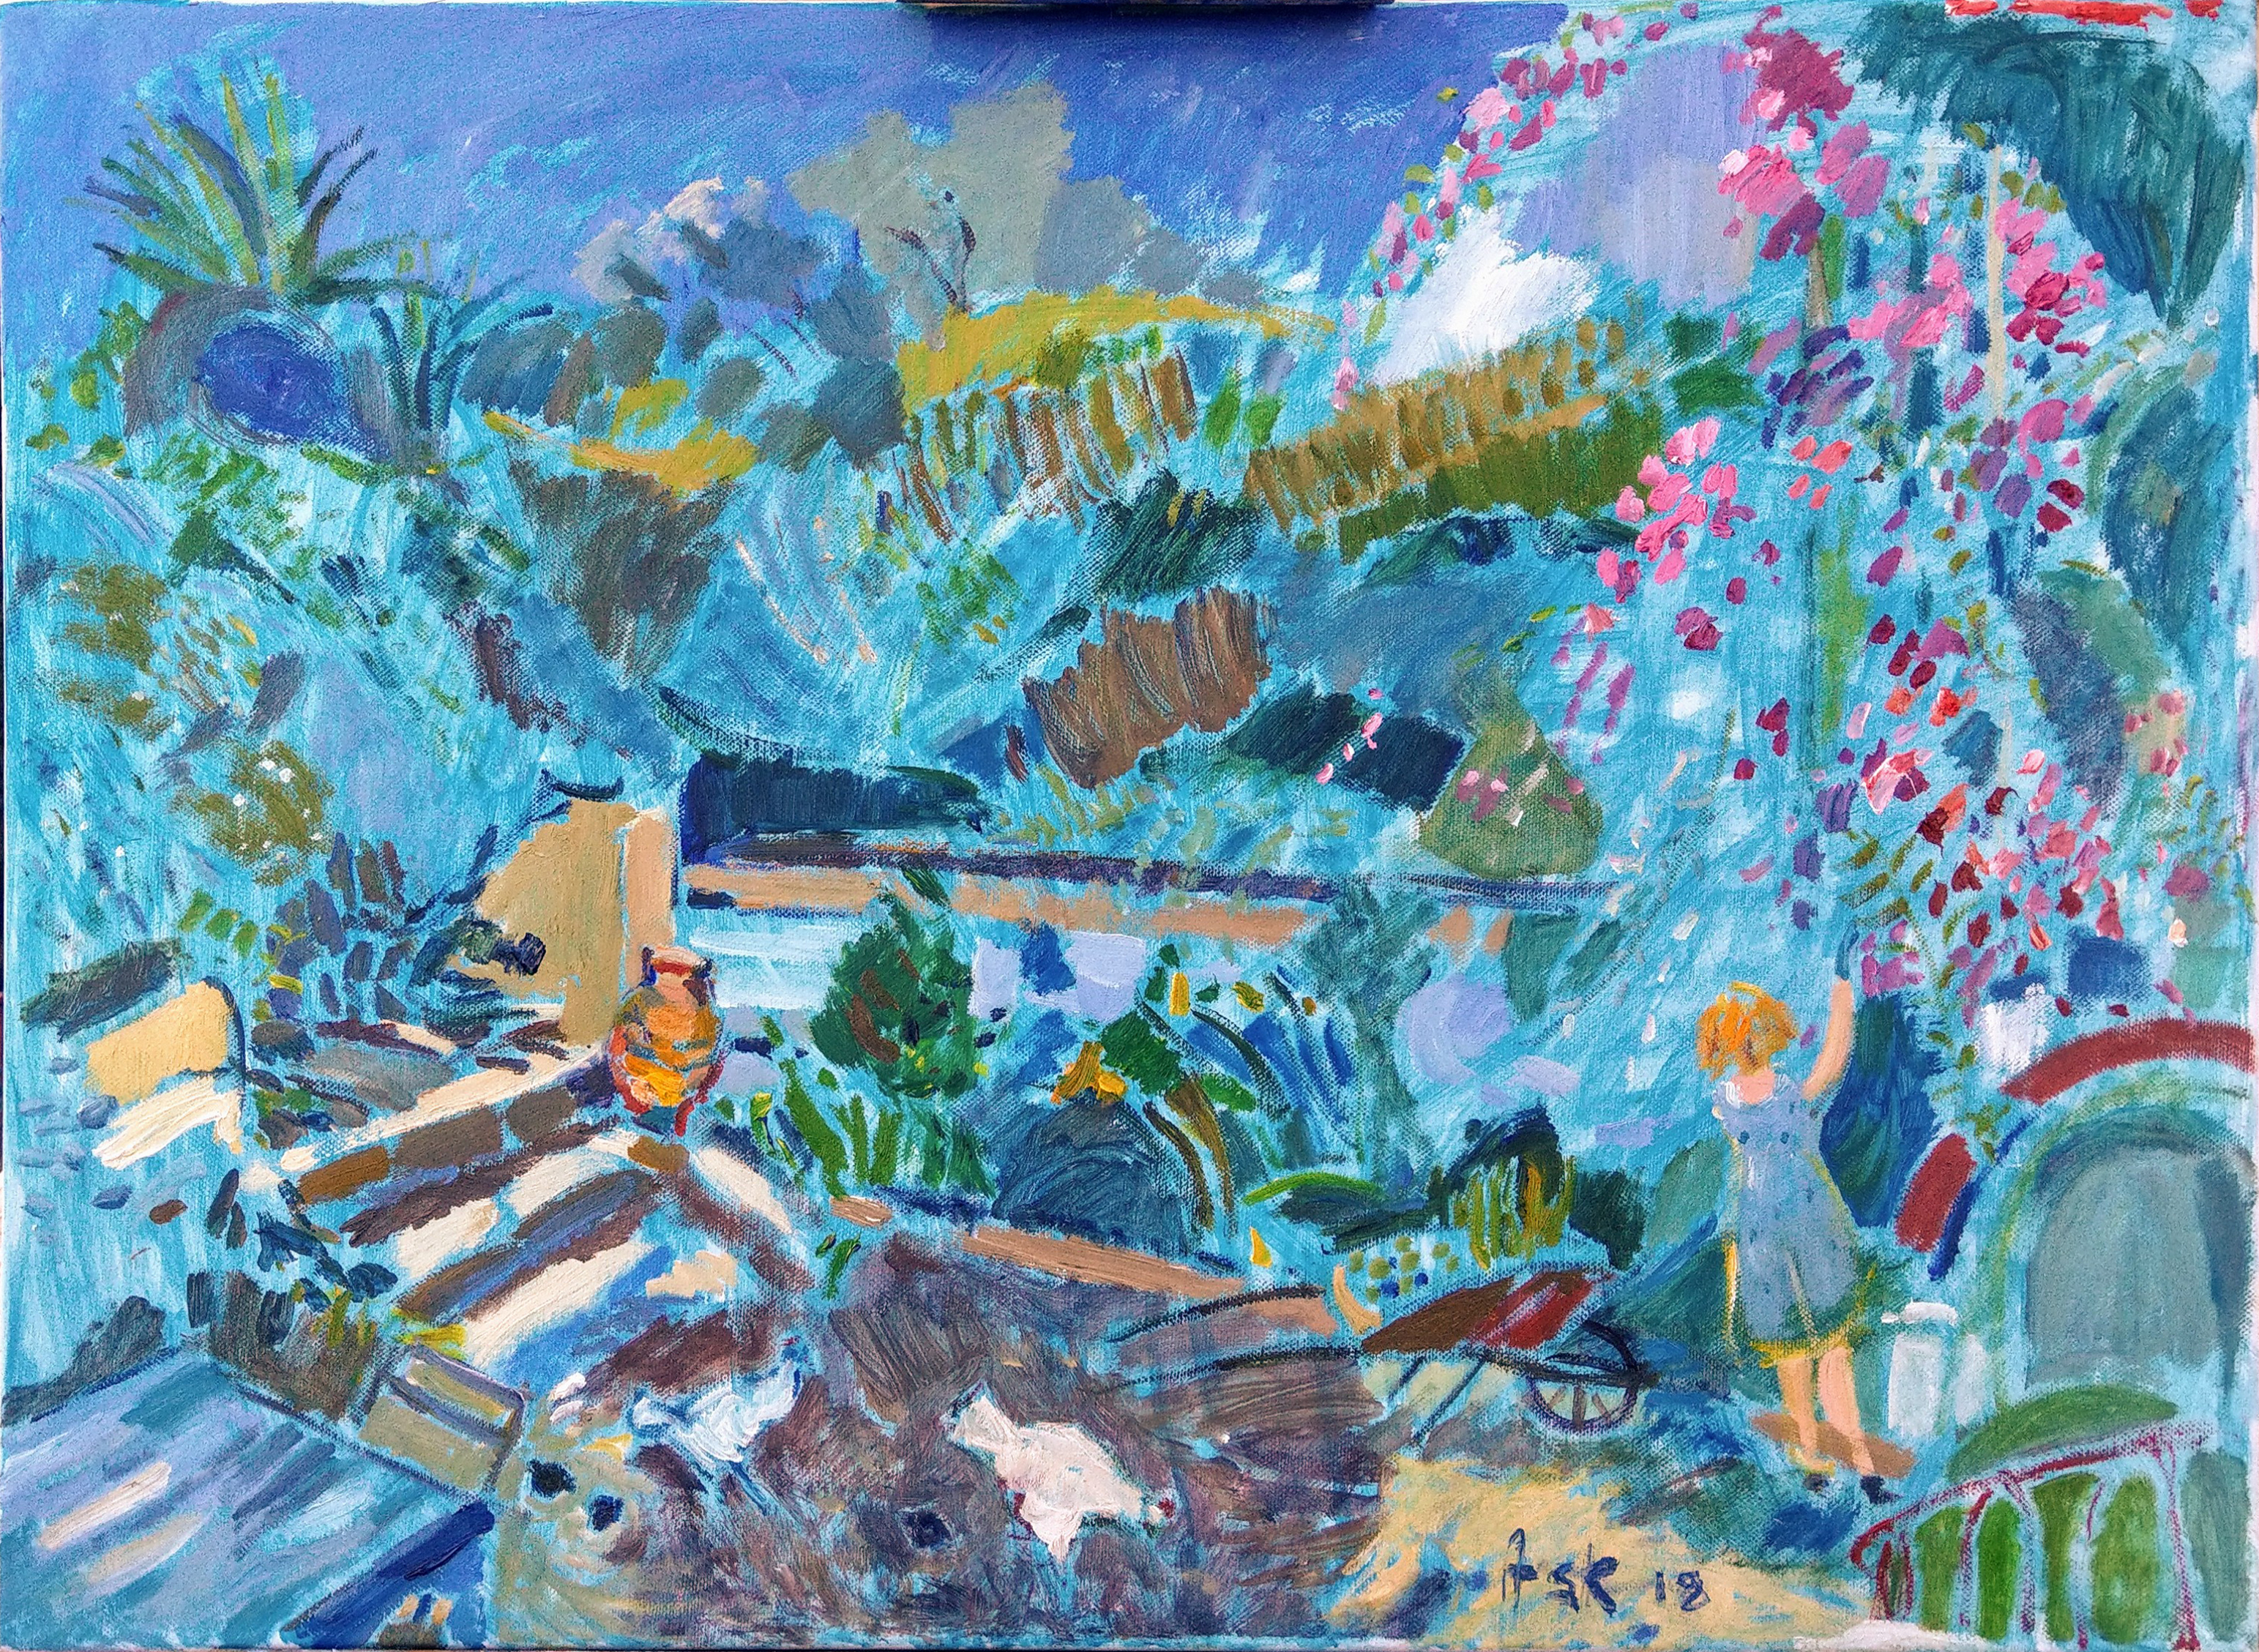 Elli watering her plants while the chickens cluck around. Oil on canvass by Ask, 700 x 500 mm